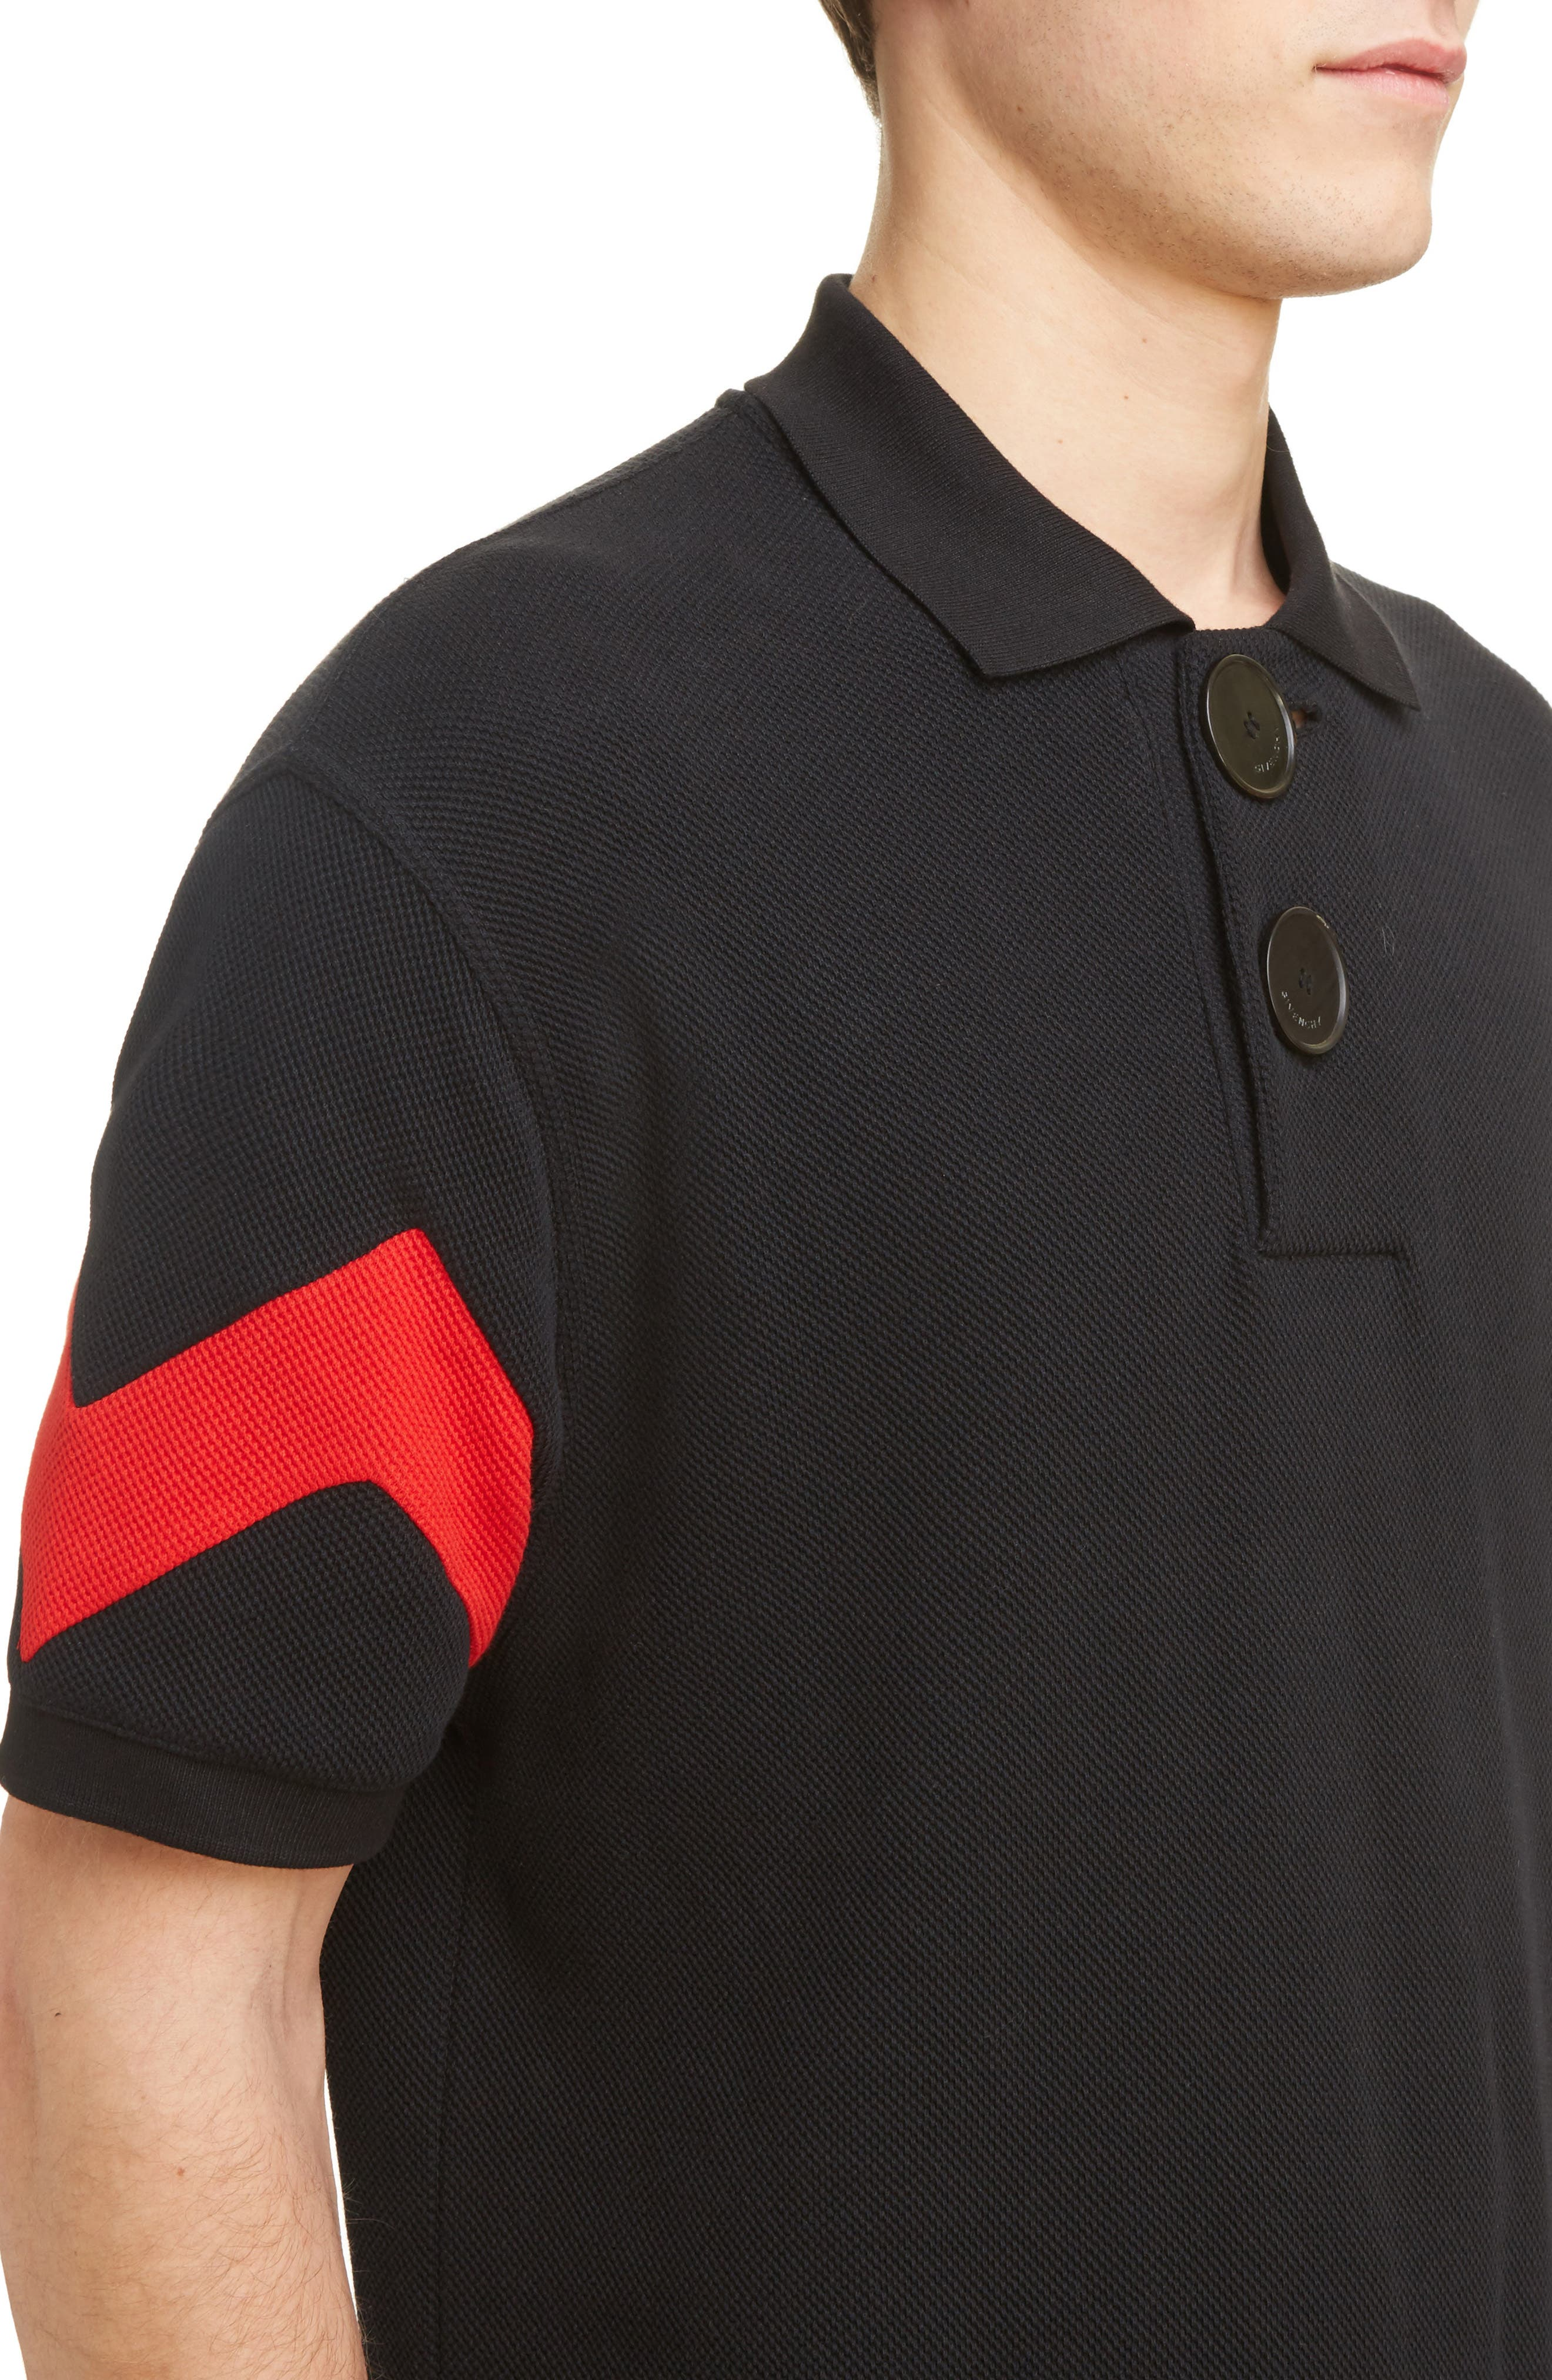 Cuban Fit Stripe Sleeve Polo,                             Alternate thumbnail 4, color,                             001